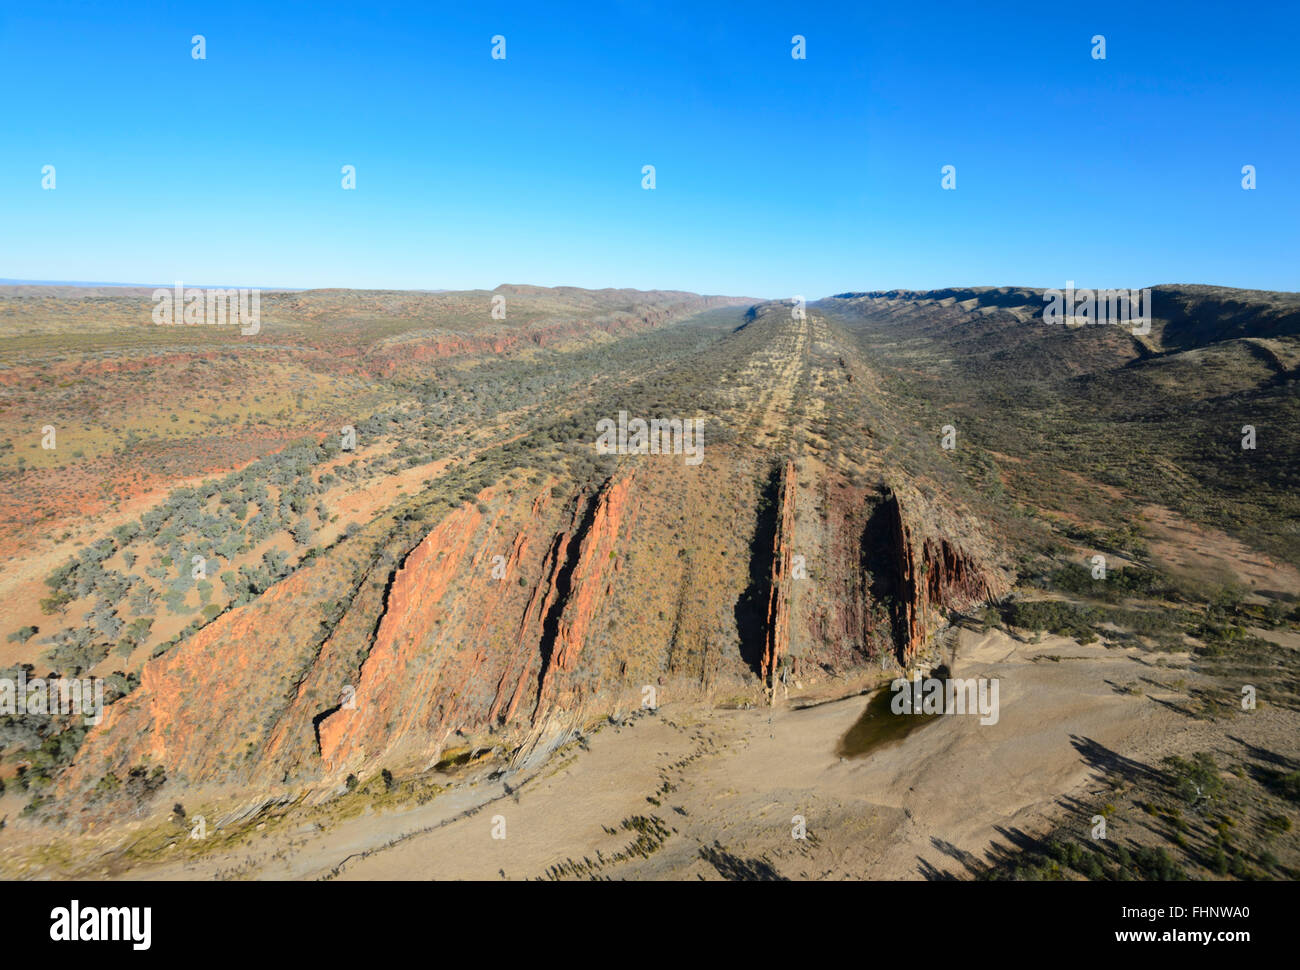 Aerial View of the West MacDonnell Ranges, Northern Territory, Australia Stock Photo